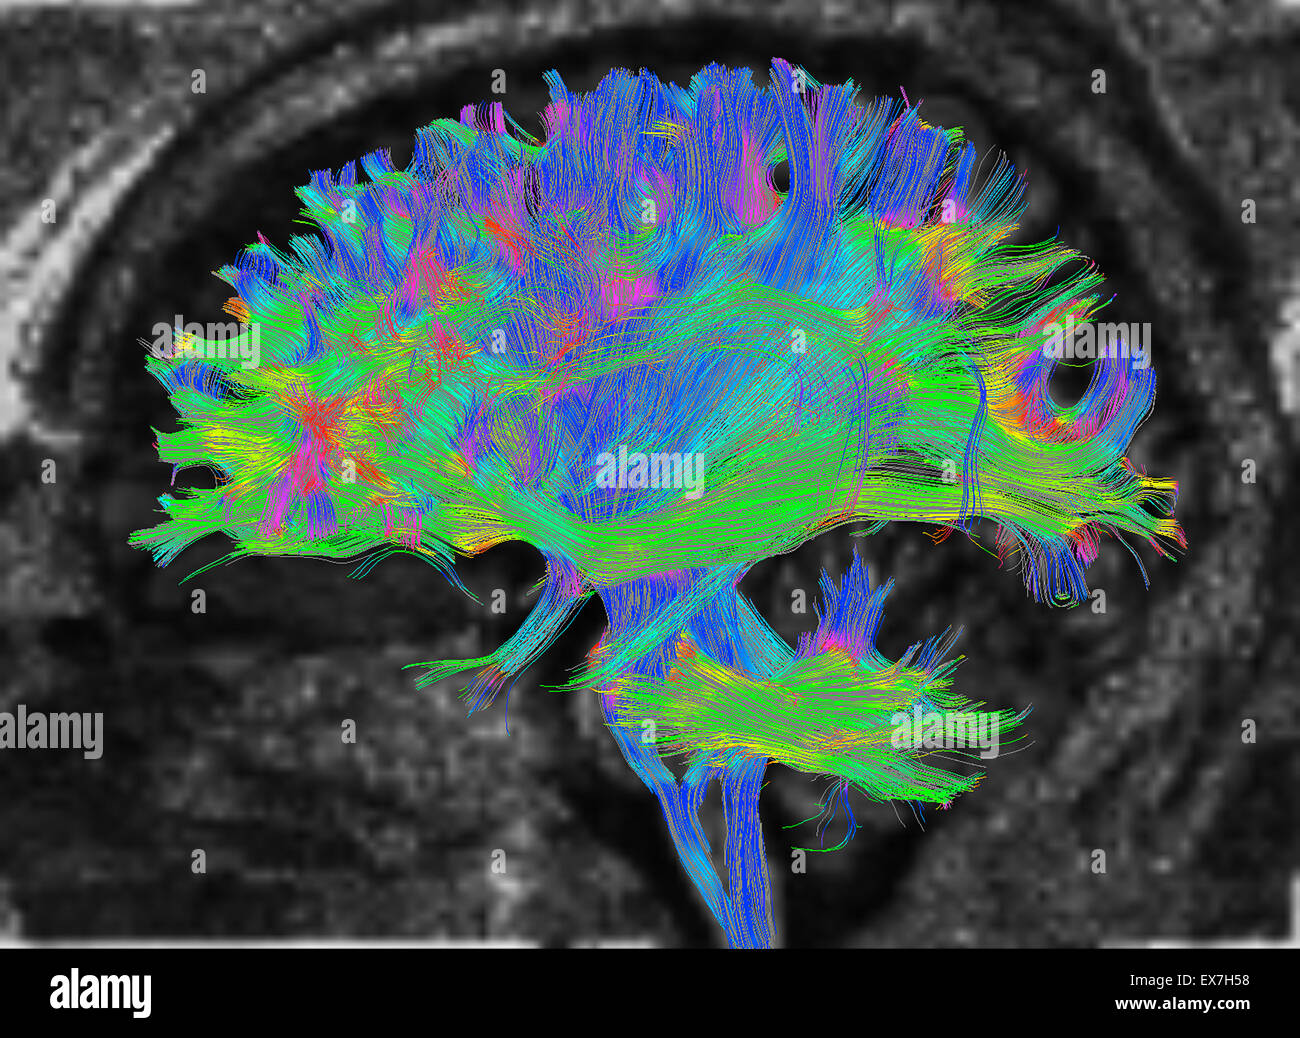 Fiber tractography image of the human brain Stock Photo